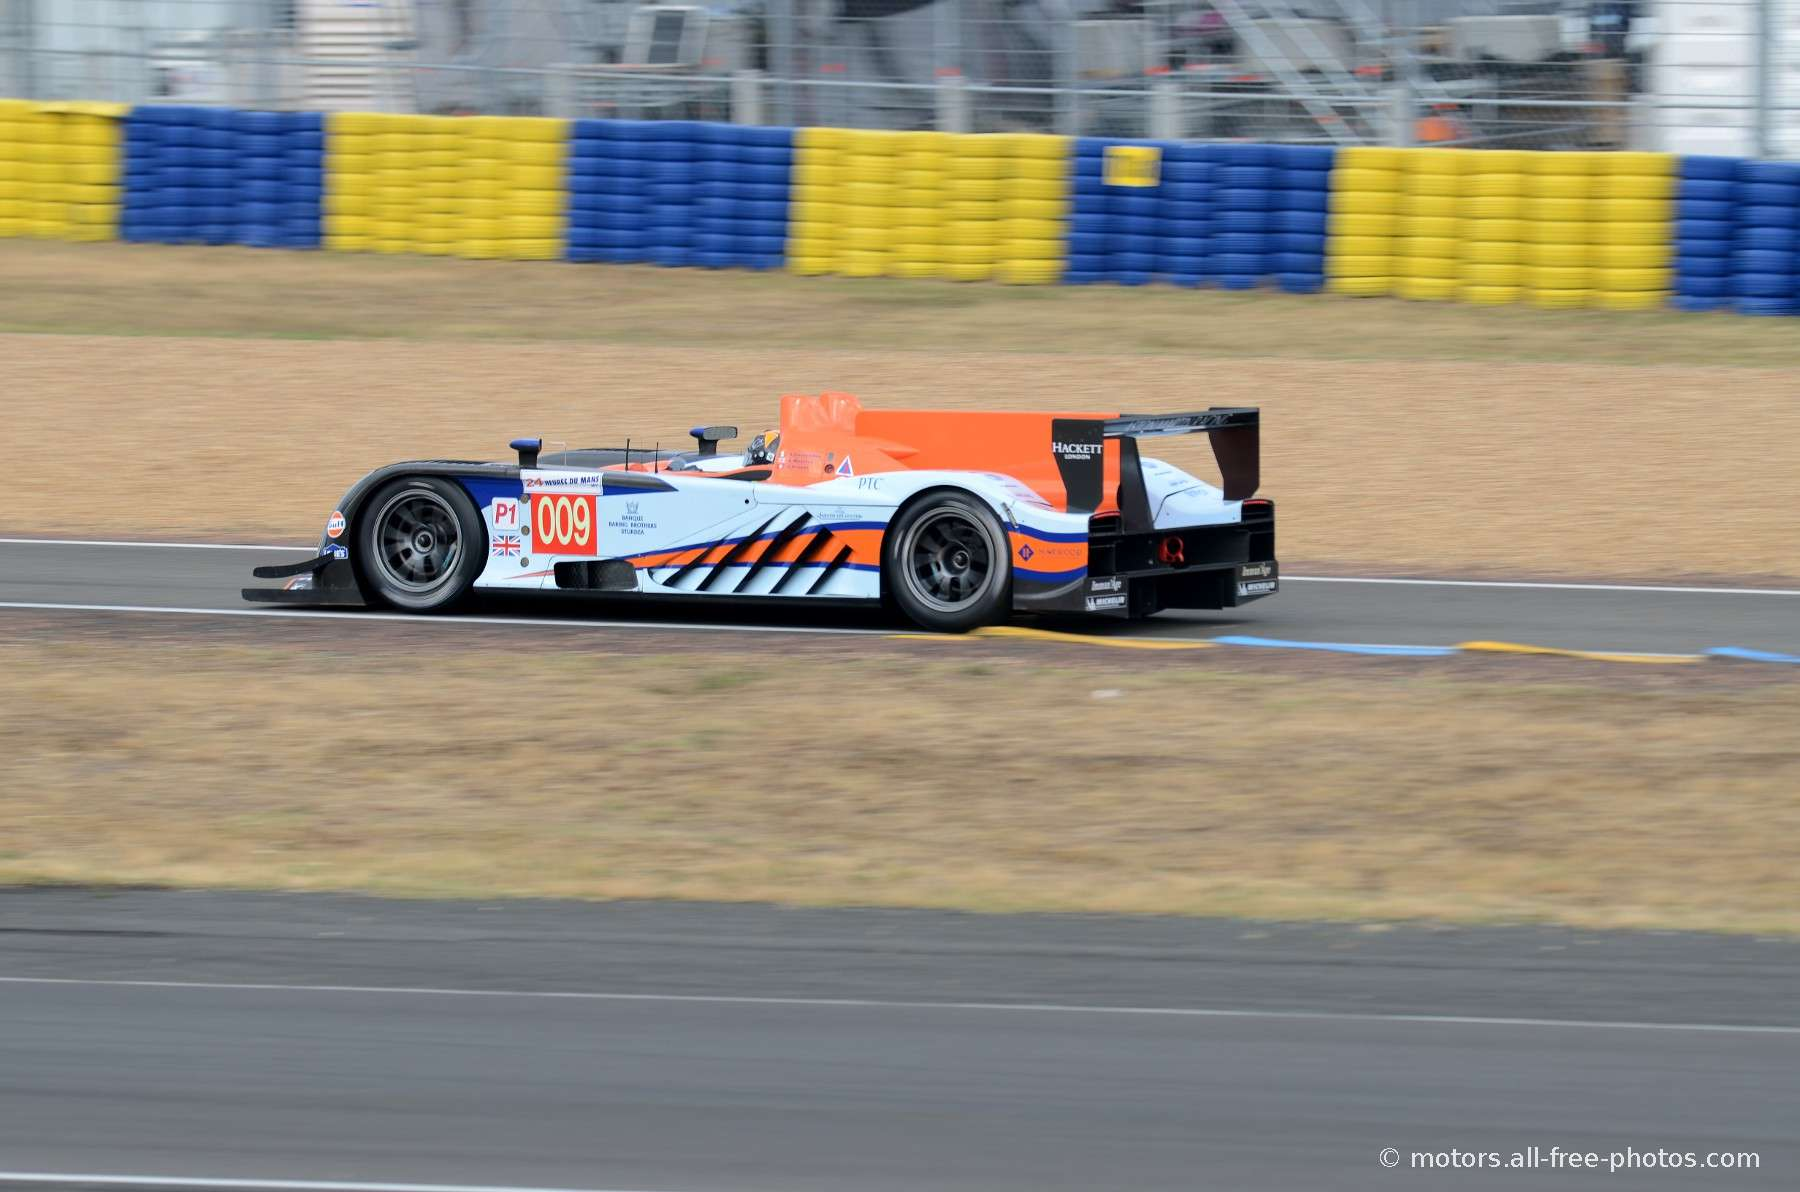 Aston Martin AMR-One - Team Astom Martin Racing